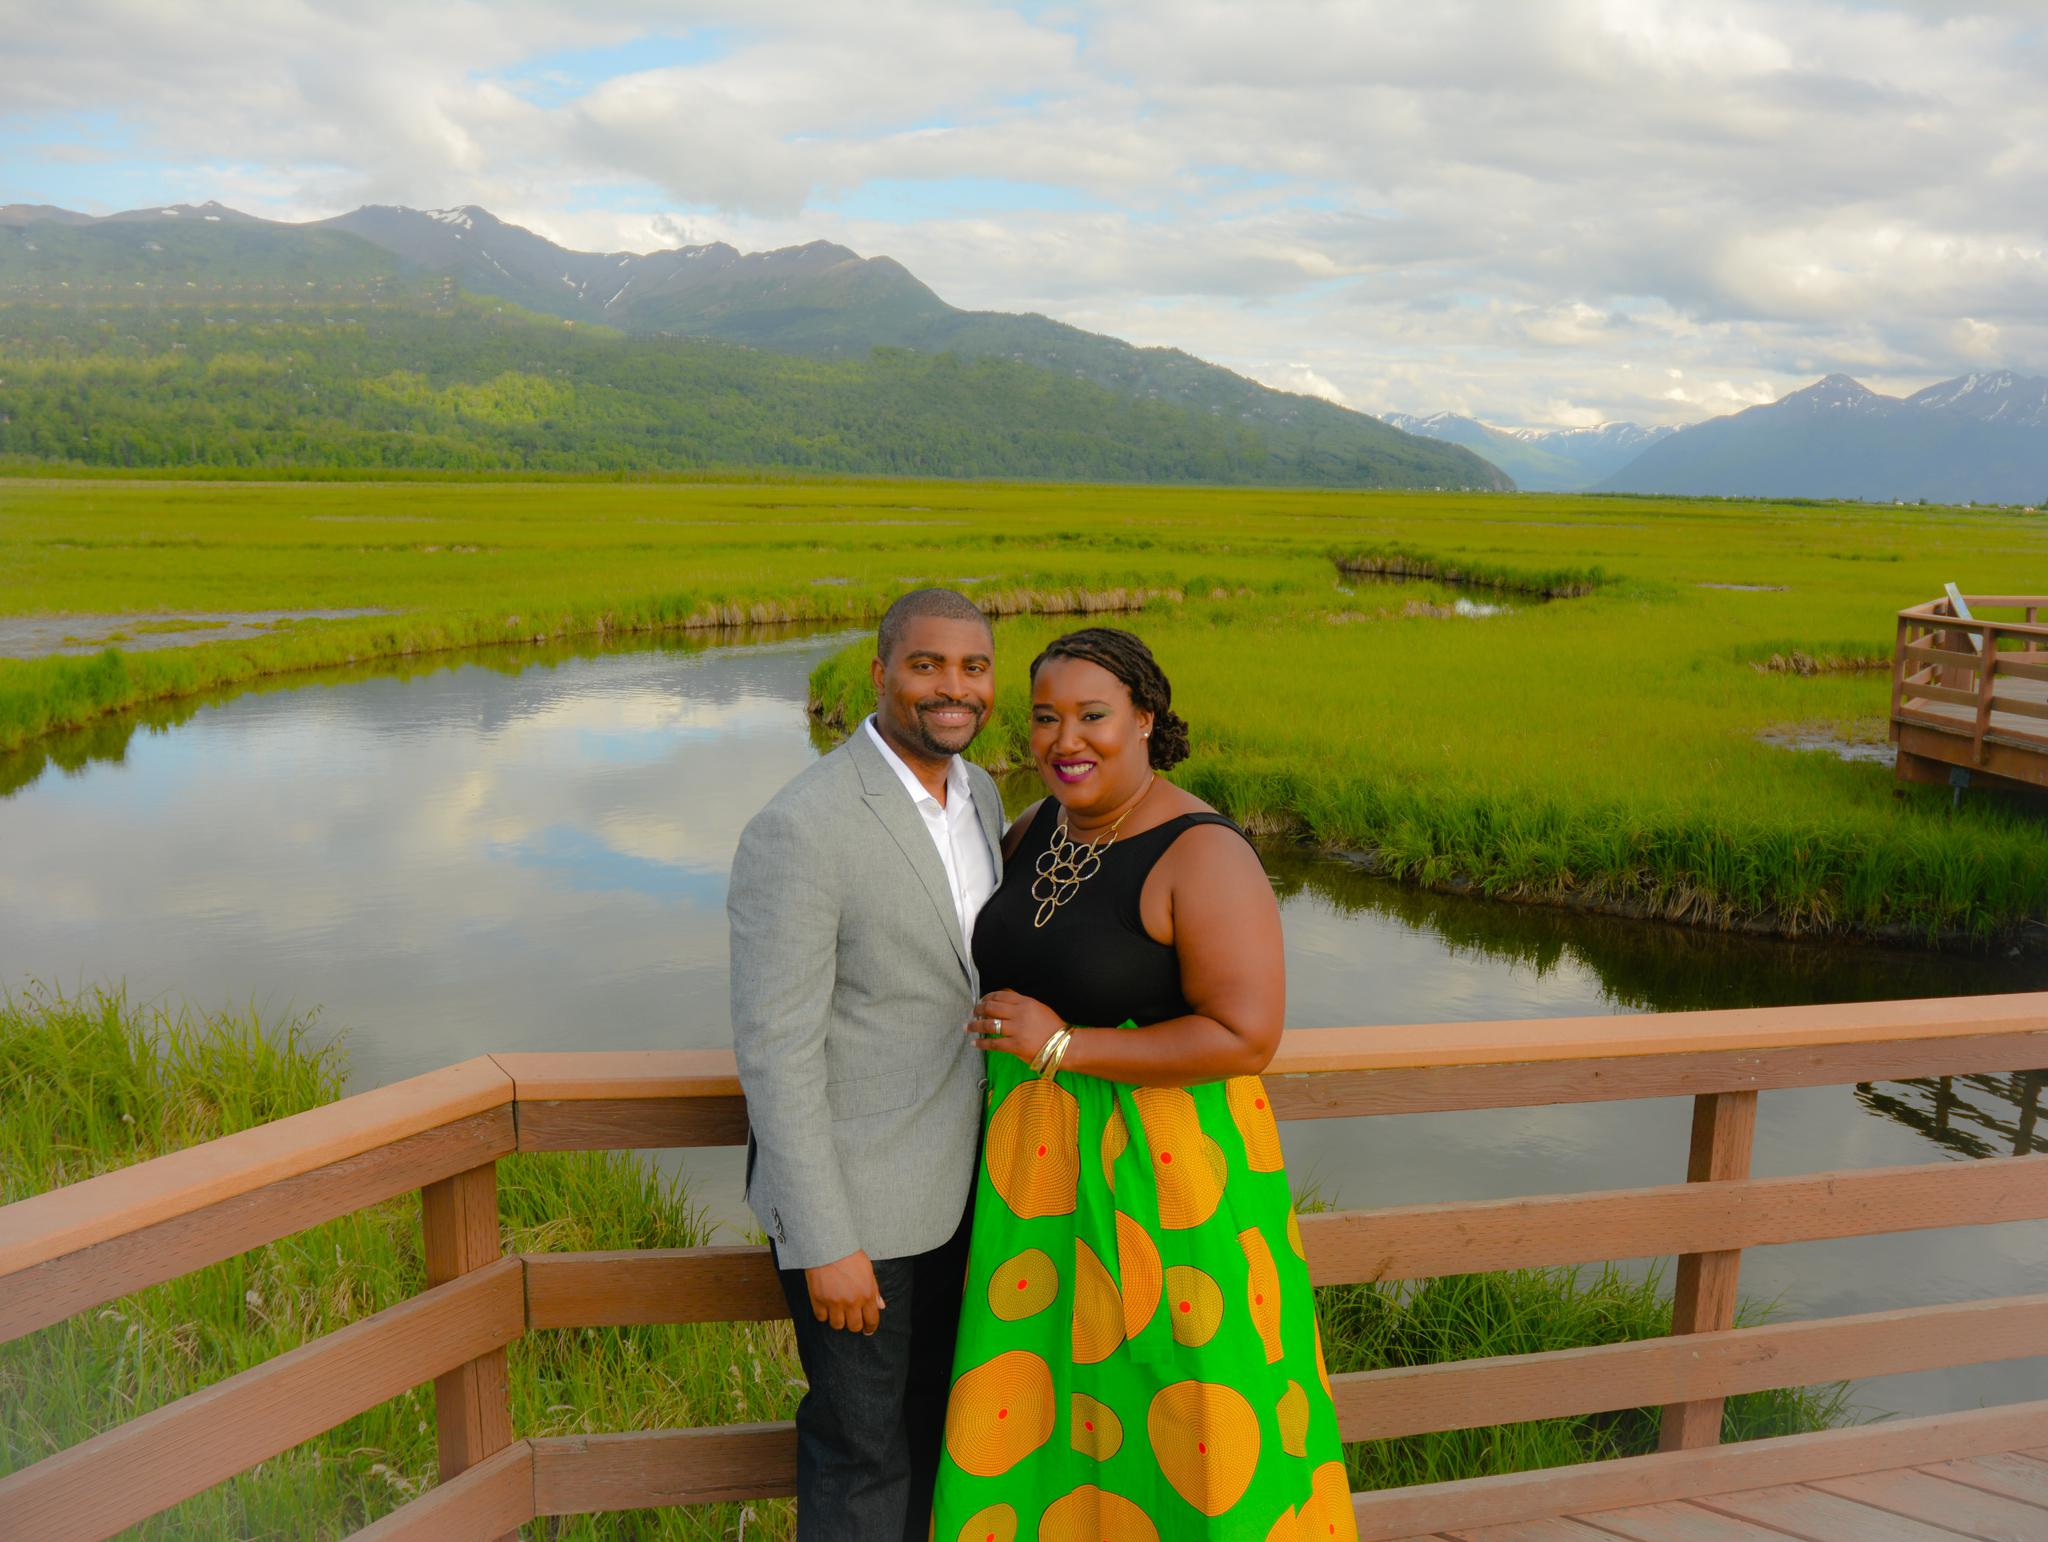 2017: WE kicked off the 10-Year Vow Renewal Celebration with a special photo shoot in Alaska --- if you want to see more of this photo shoot, visit https://www.icloud.com/sharedalbum/#B0f59UlCq0n3aU (copy and paste the link into your browser).